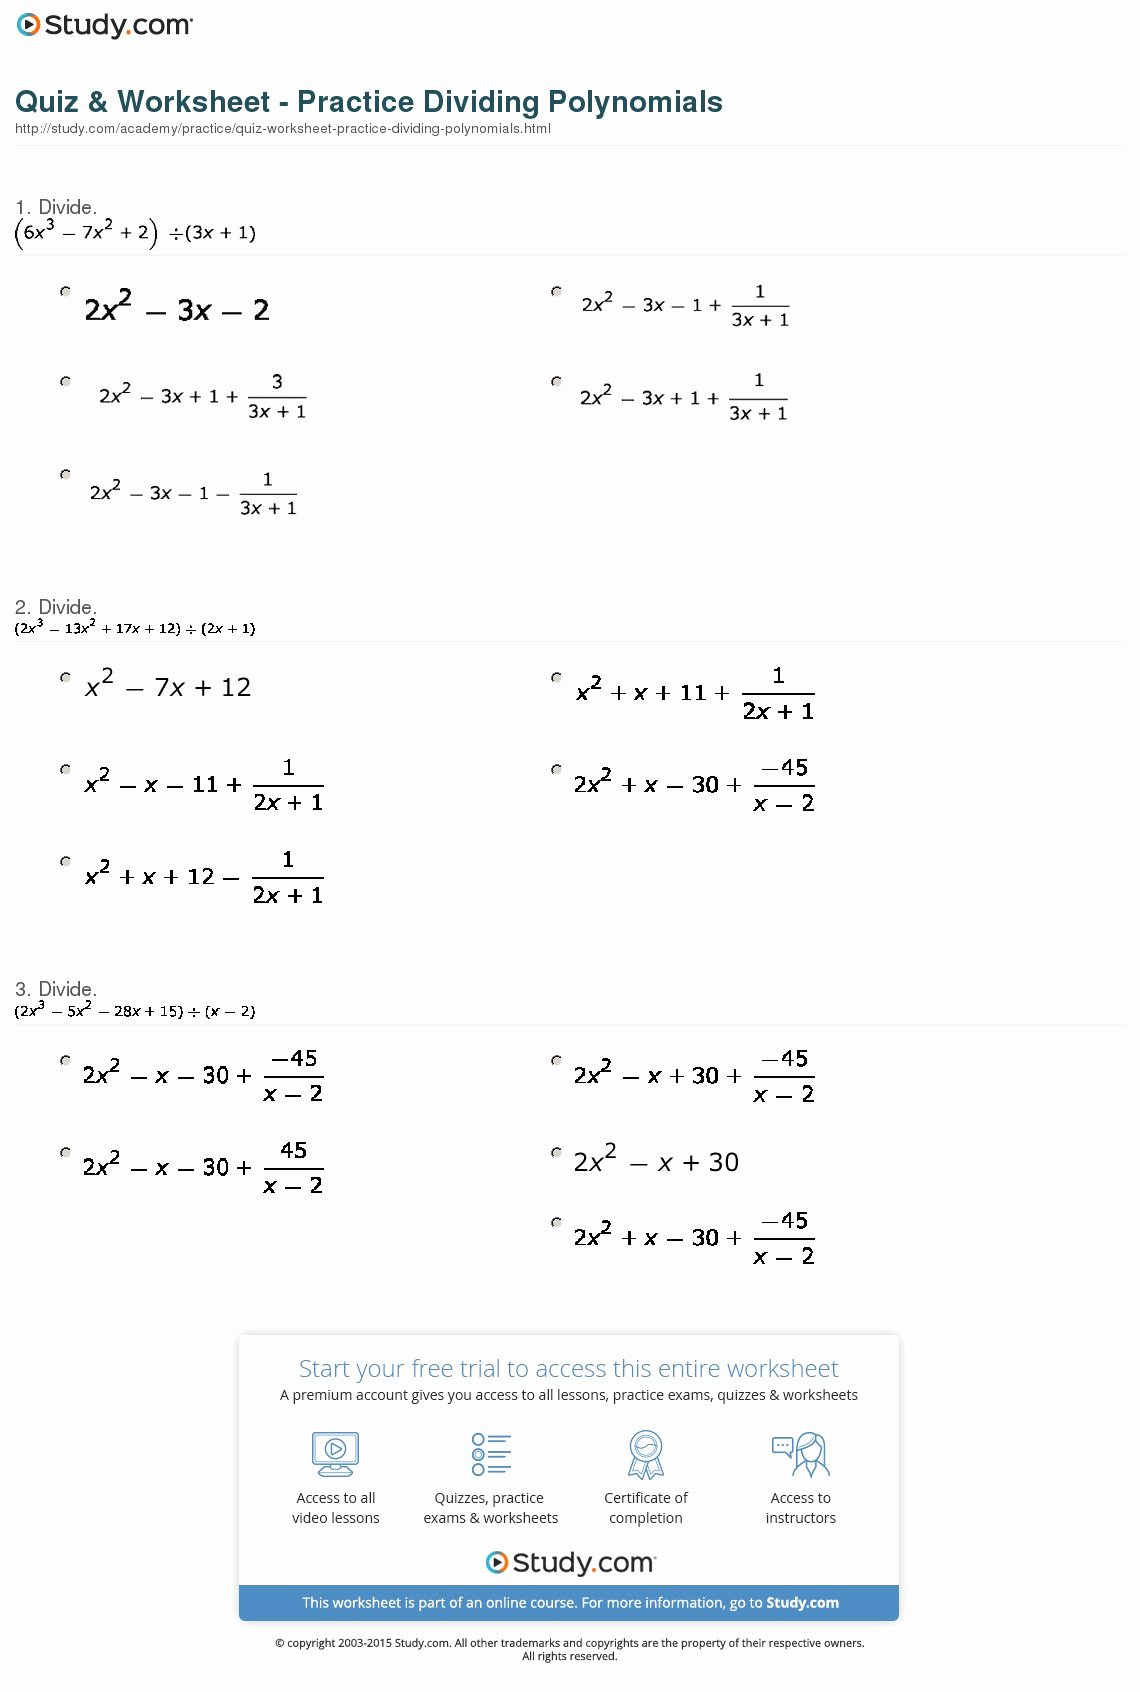 Long Division Of Polynomials Worksheet Lovely Quiz & Worksheet Practice Dividing Polynomials